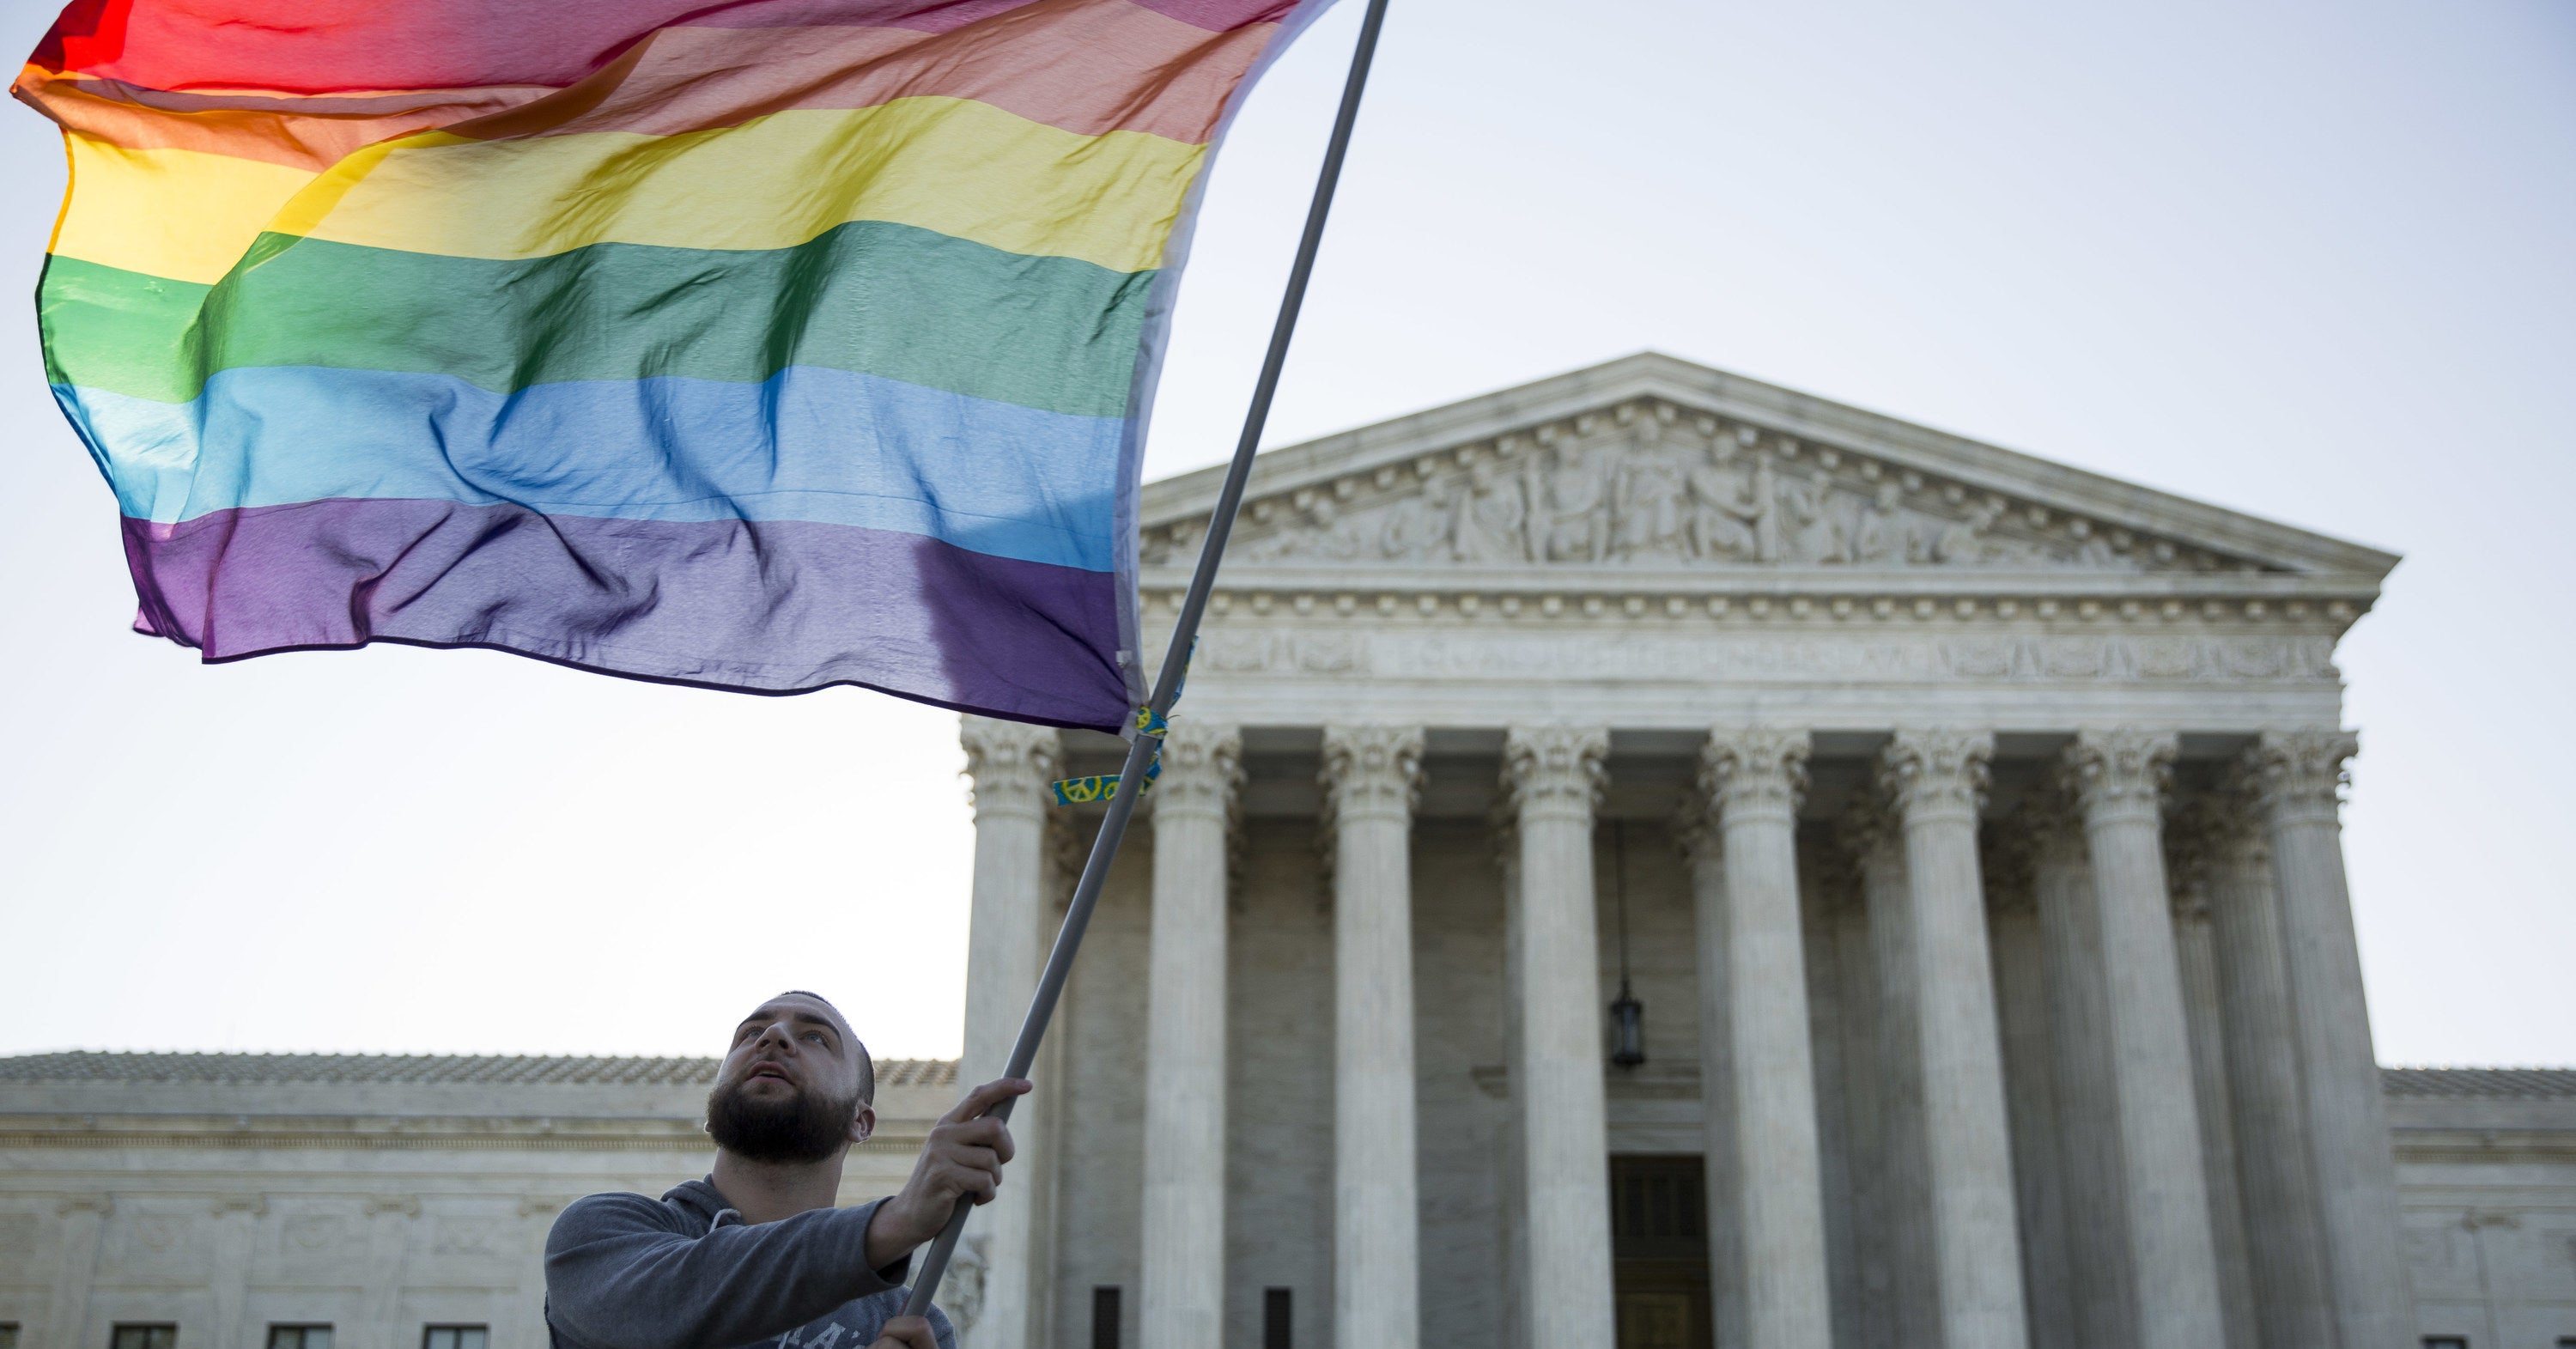 The Supreme Court Will Consider Whether Adoption Agencies That Get Federal Money Can Turn Away Same-Sex Couples